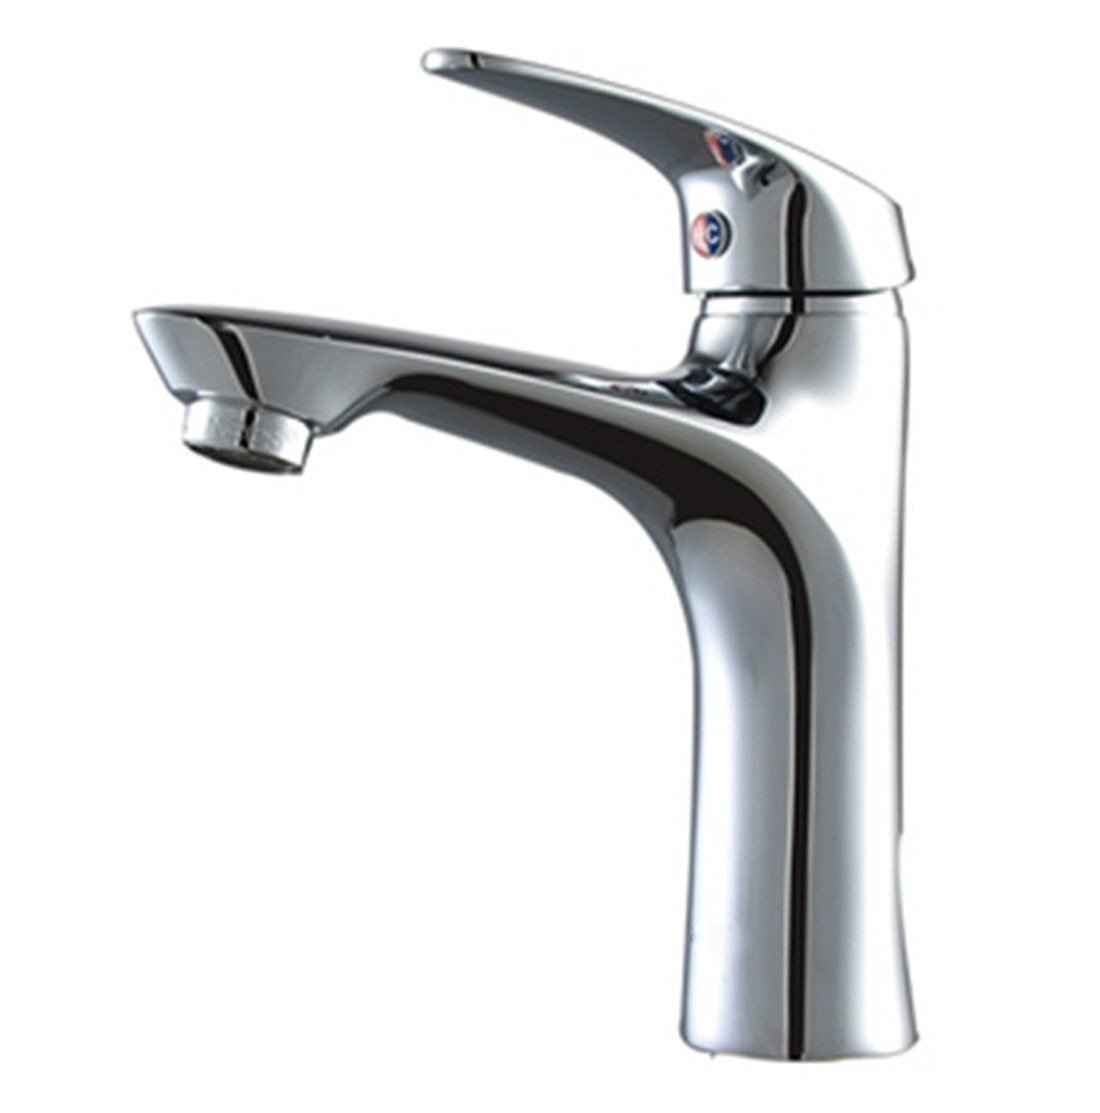 MDRW-Water faucet, basin faucet open up by MDRW